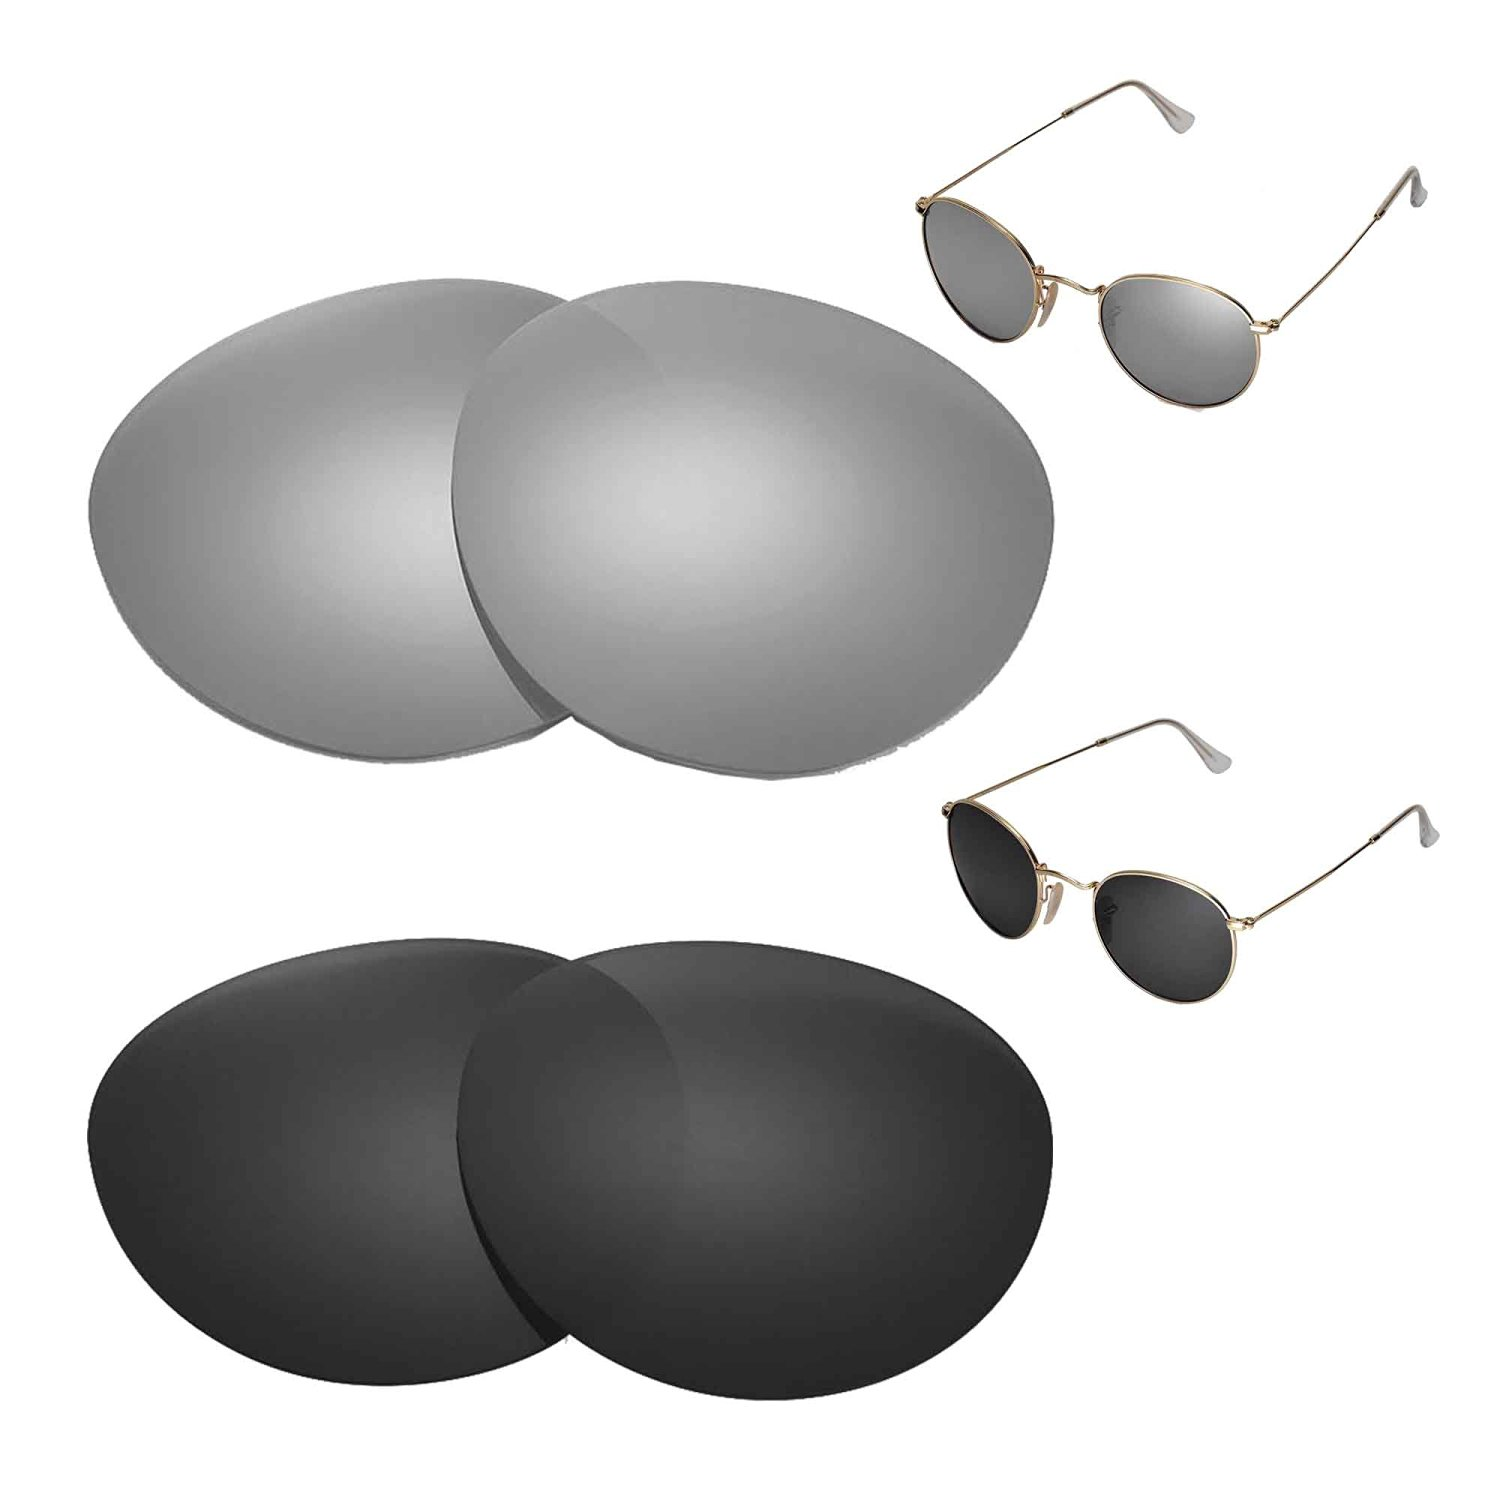 748c19eab5c Walleva Polarized Titanium + Black Replacement Lenses for Ray-Ban Round  Metal RB3447 50mm